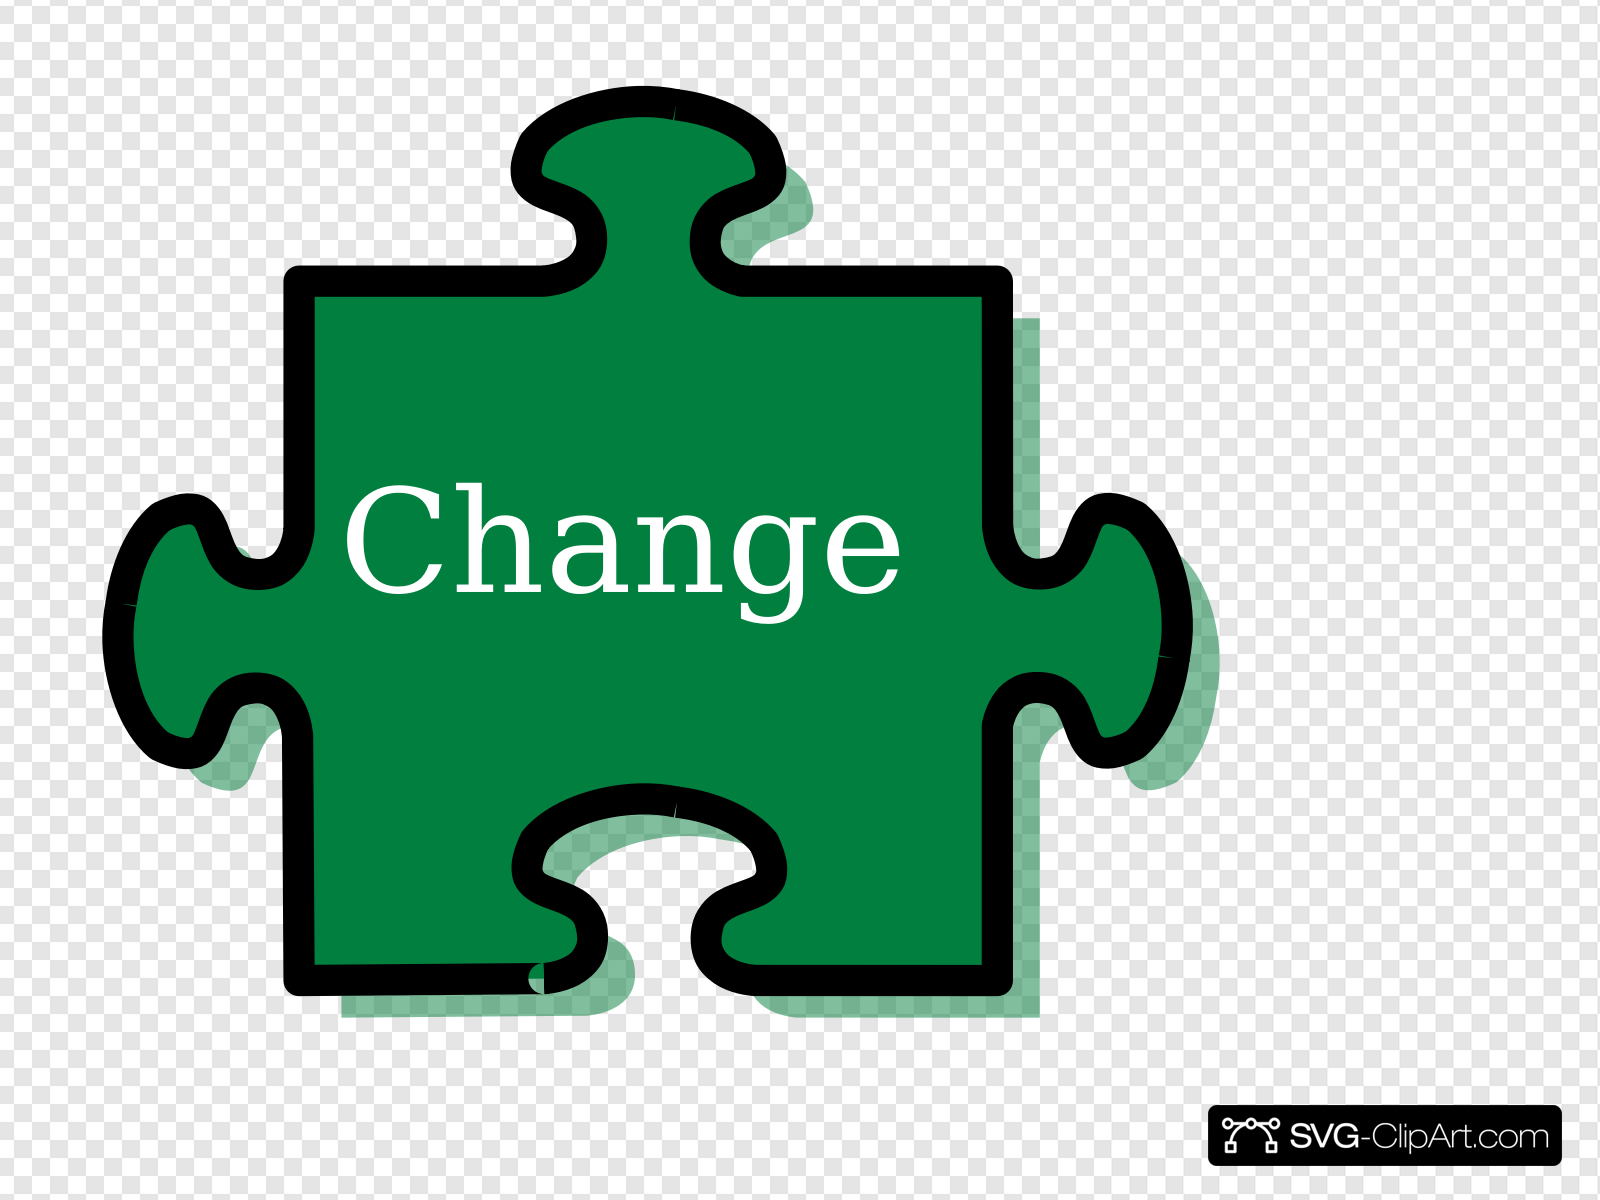 Change Clip art, Icon and SVG.